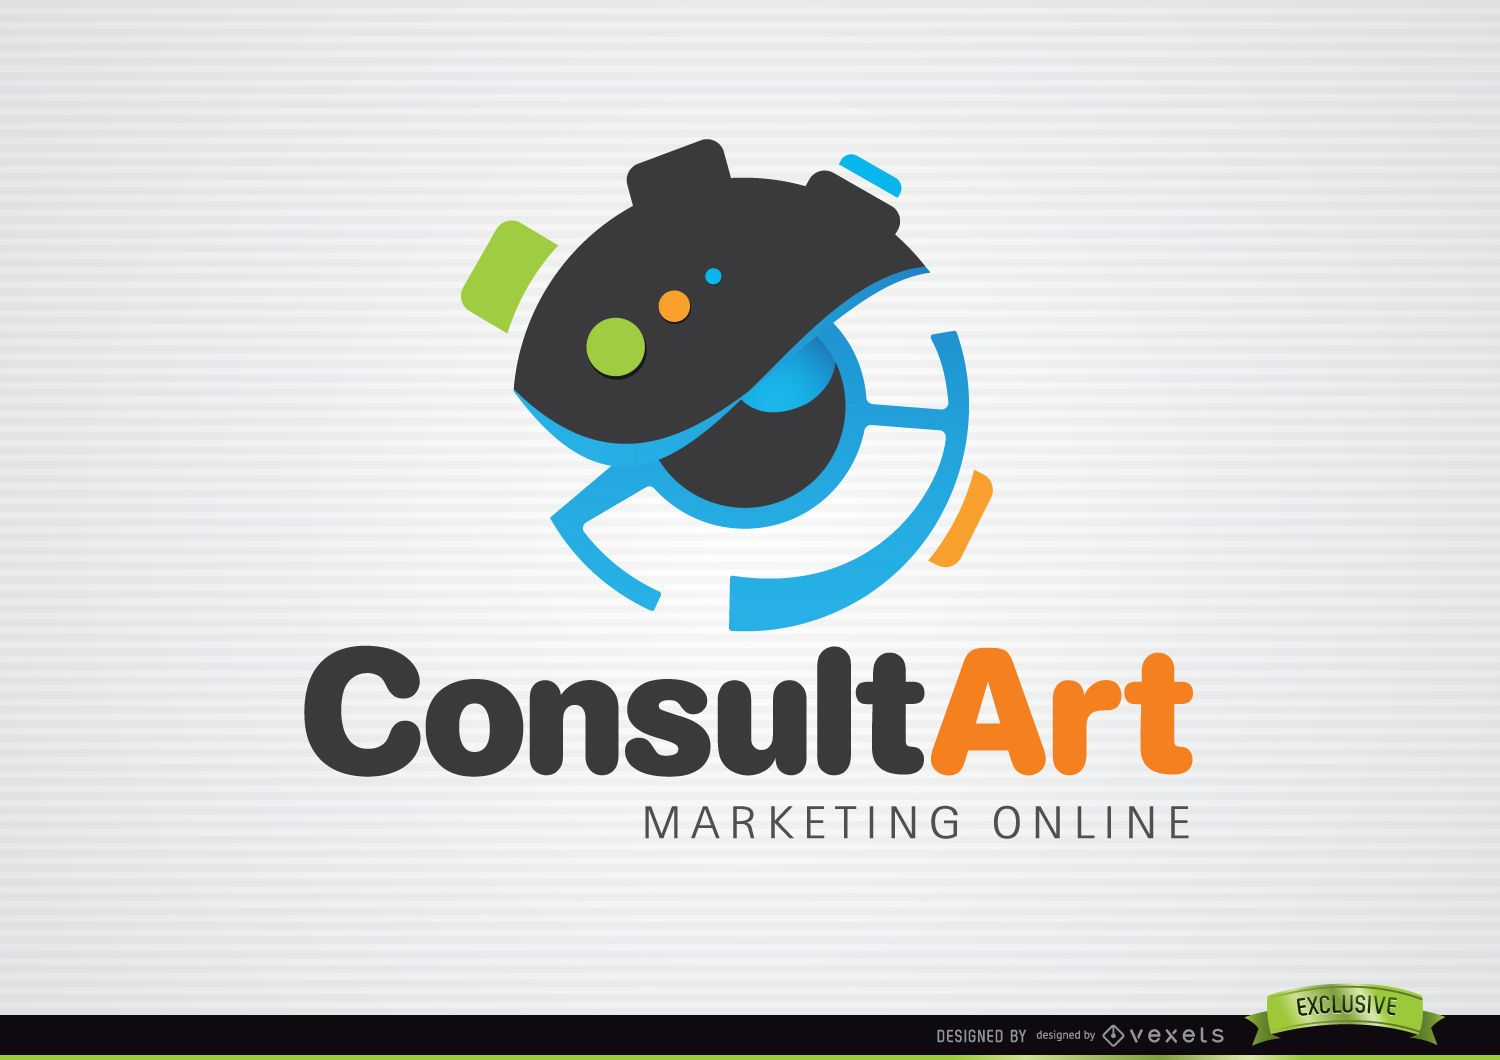 Consult art marketing logo vector download consult art marketing logo download large image 1602x1133px altavistaventures Image collections